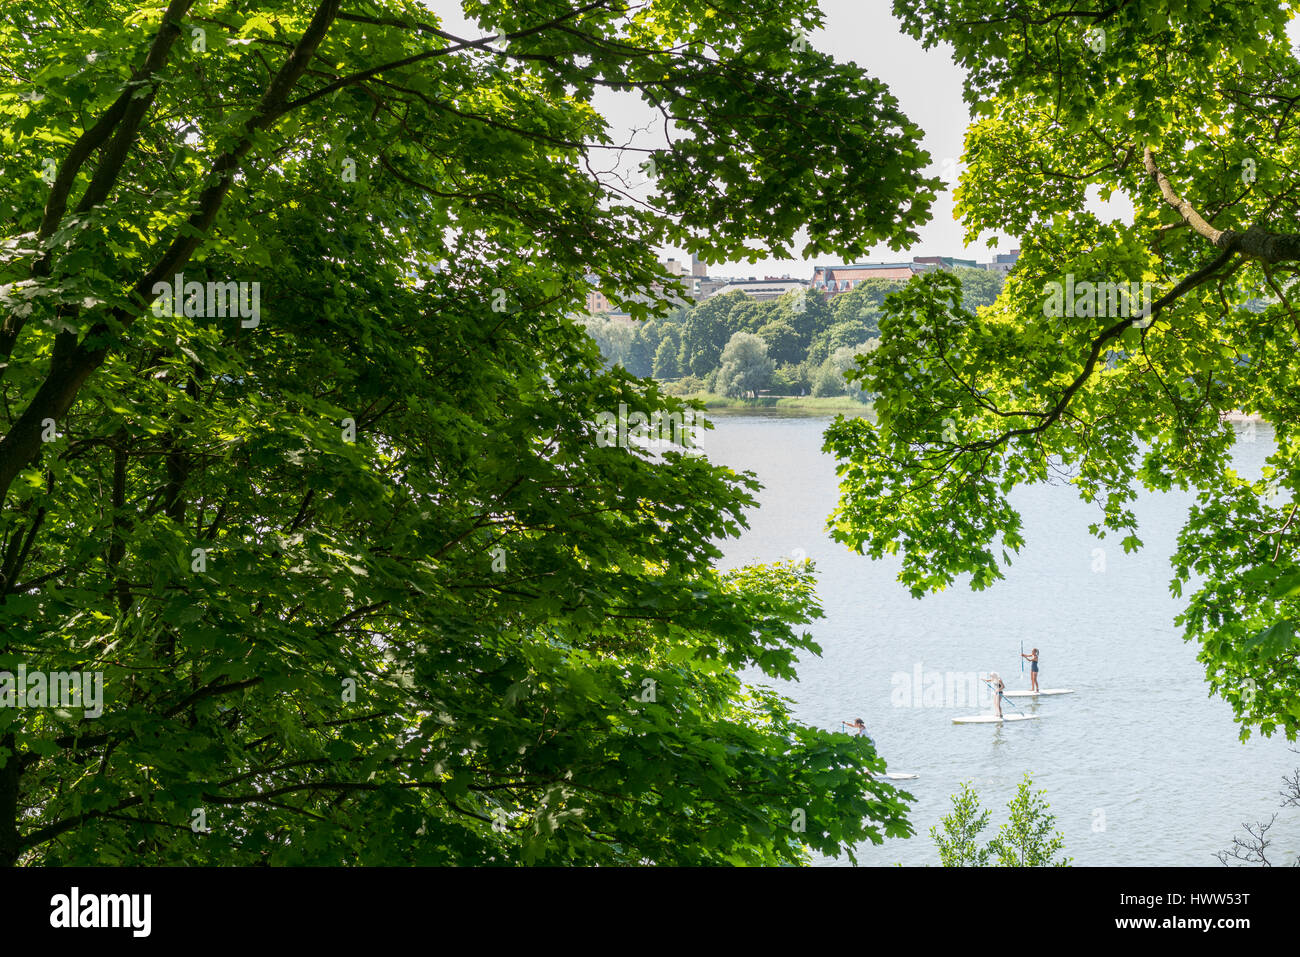 PEOPLE ON STAND UP PADDEL BOARDS ON A LAKE IN HELSINKI SURROUNDED BY TREES Stock Photo